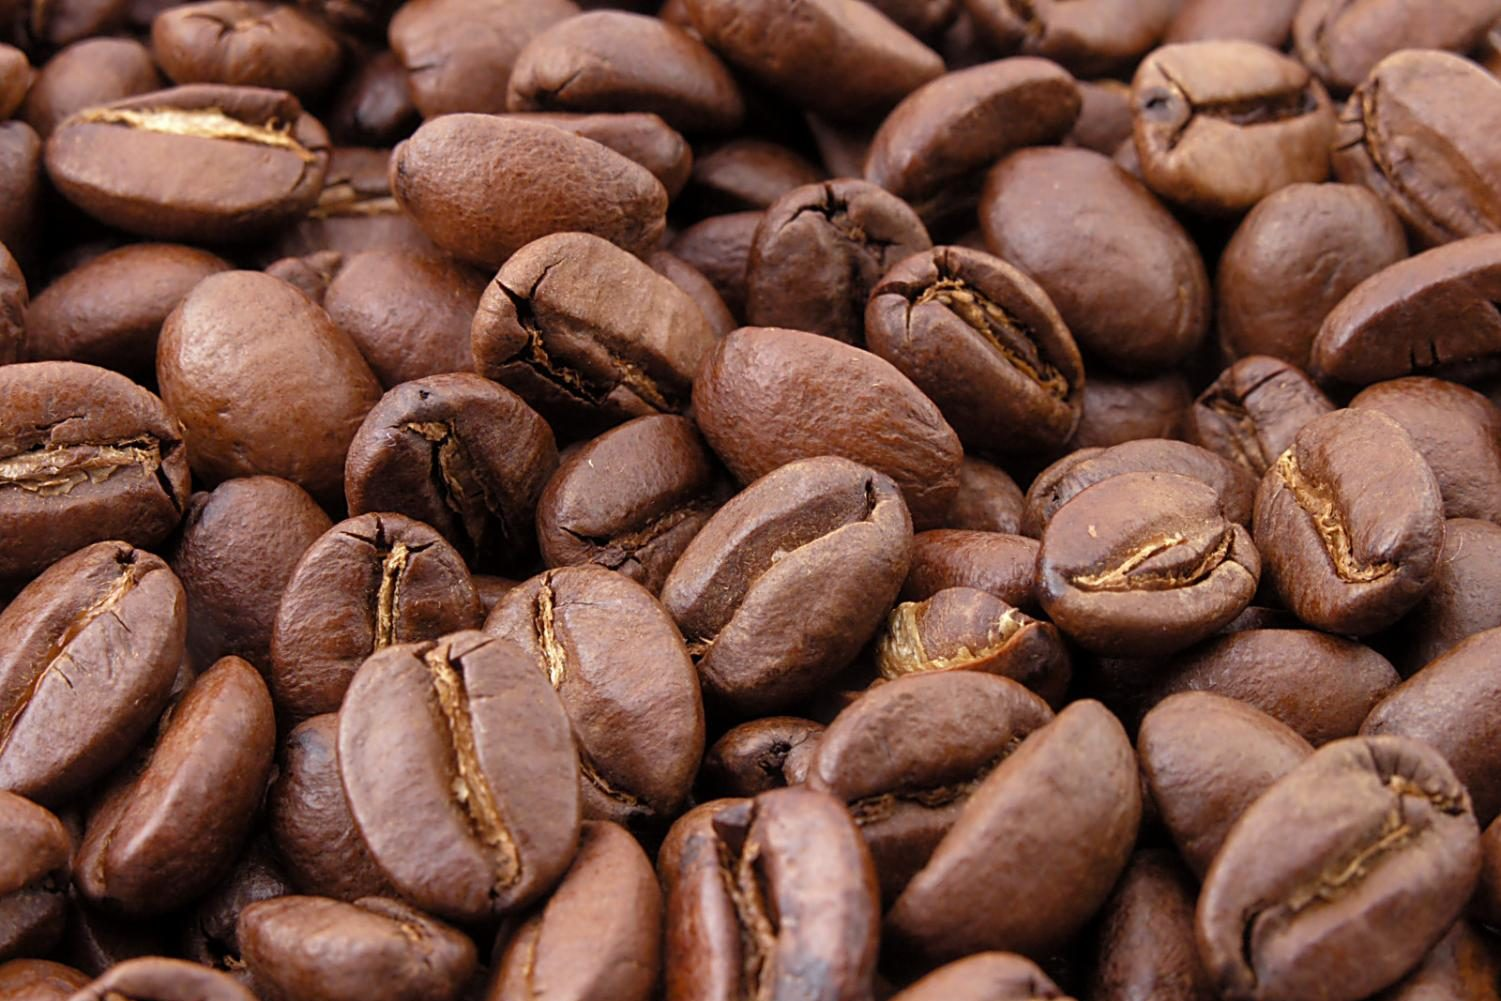 Scattered coffee beans on a table.